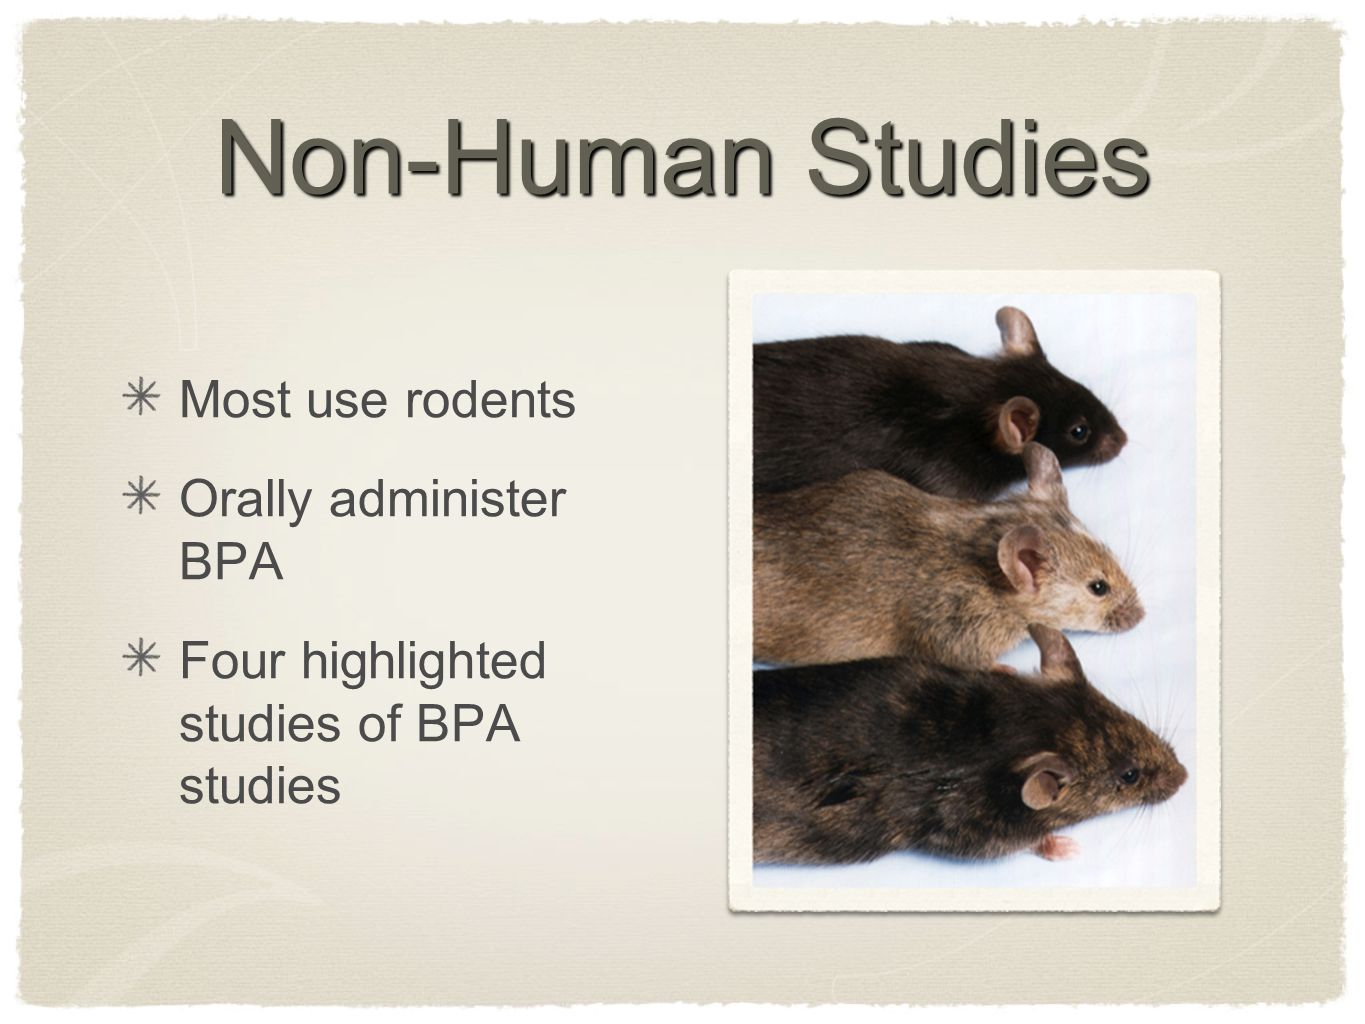 Non-Human Studies Most use rodents Orally administer BPA Four highlighted studies of BPA studies